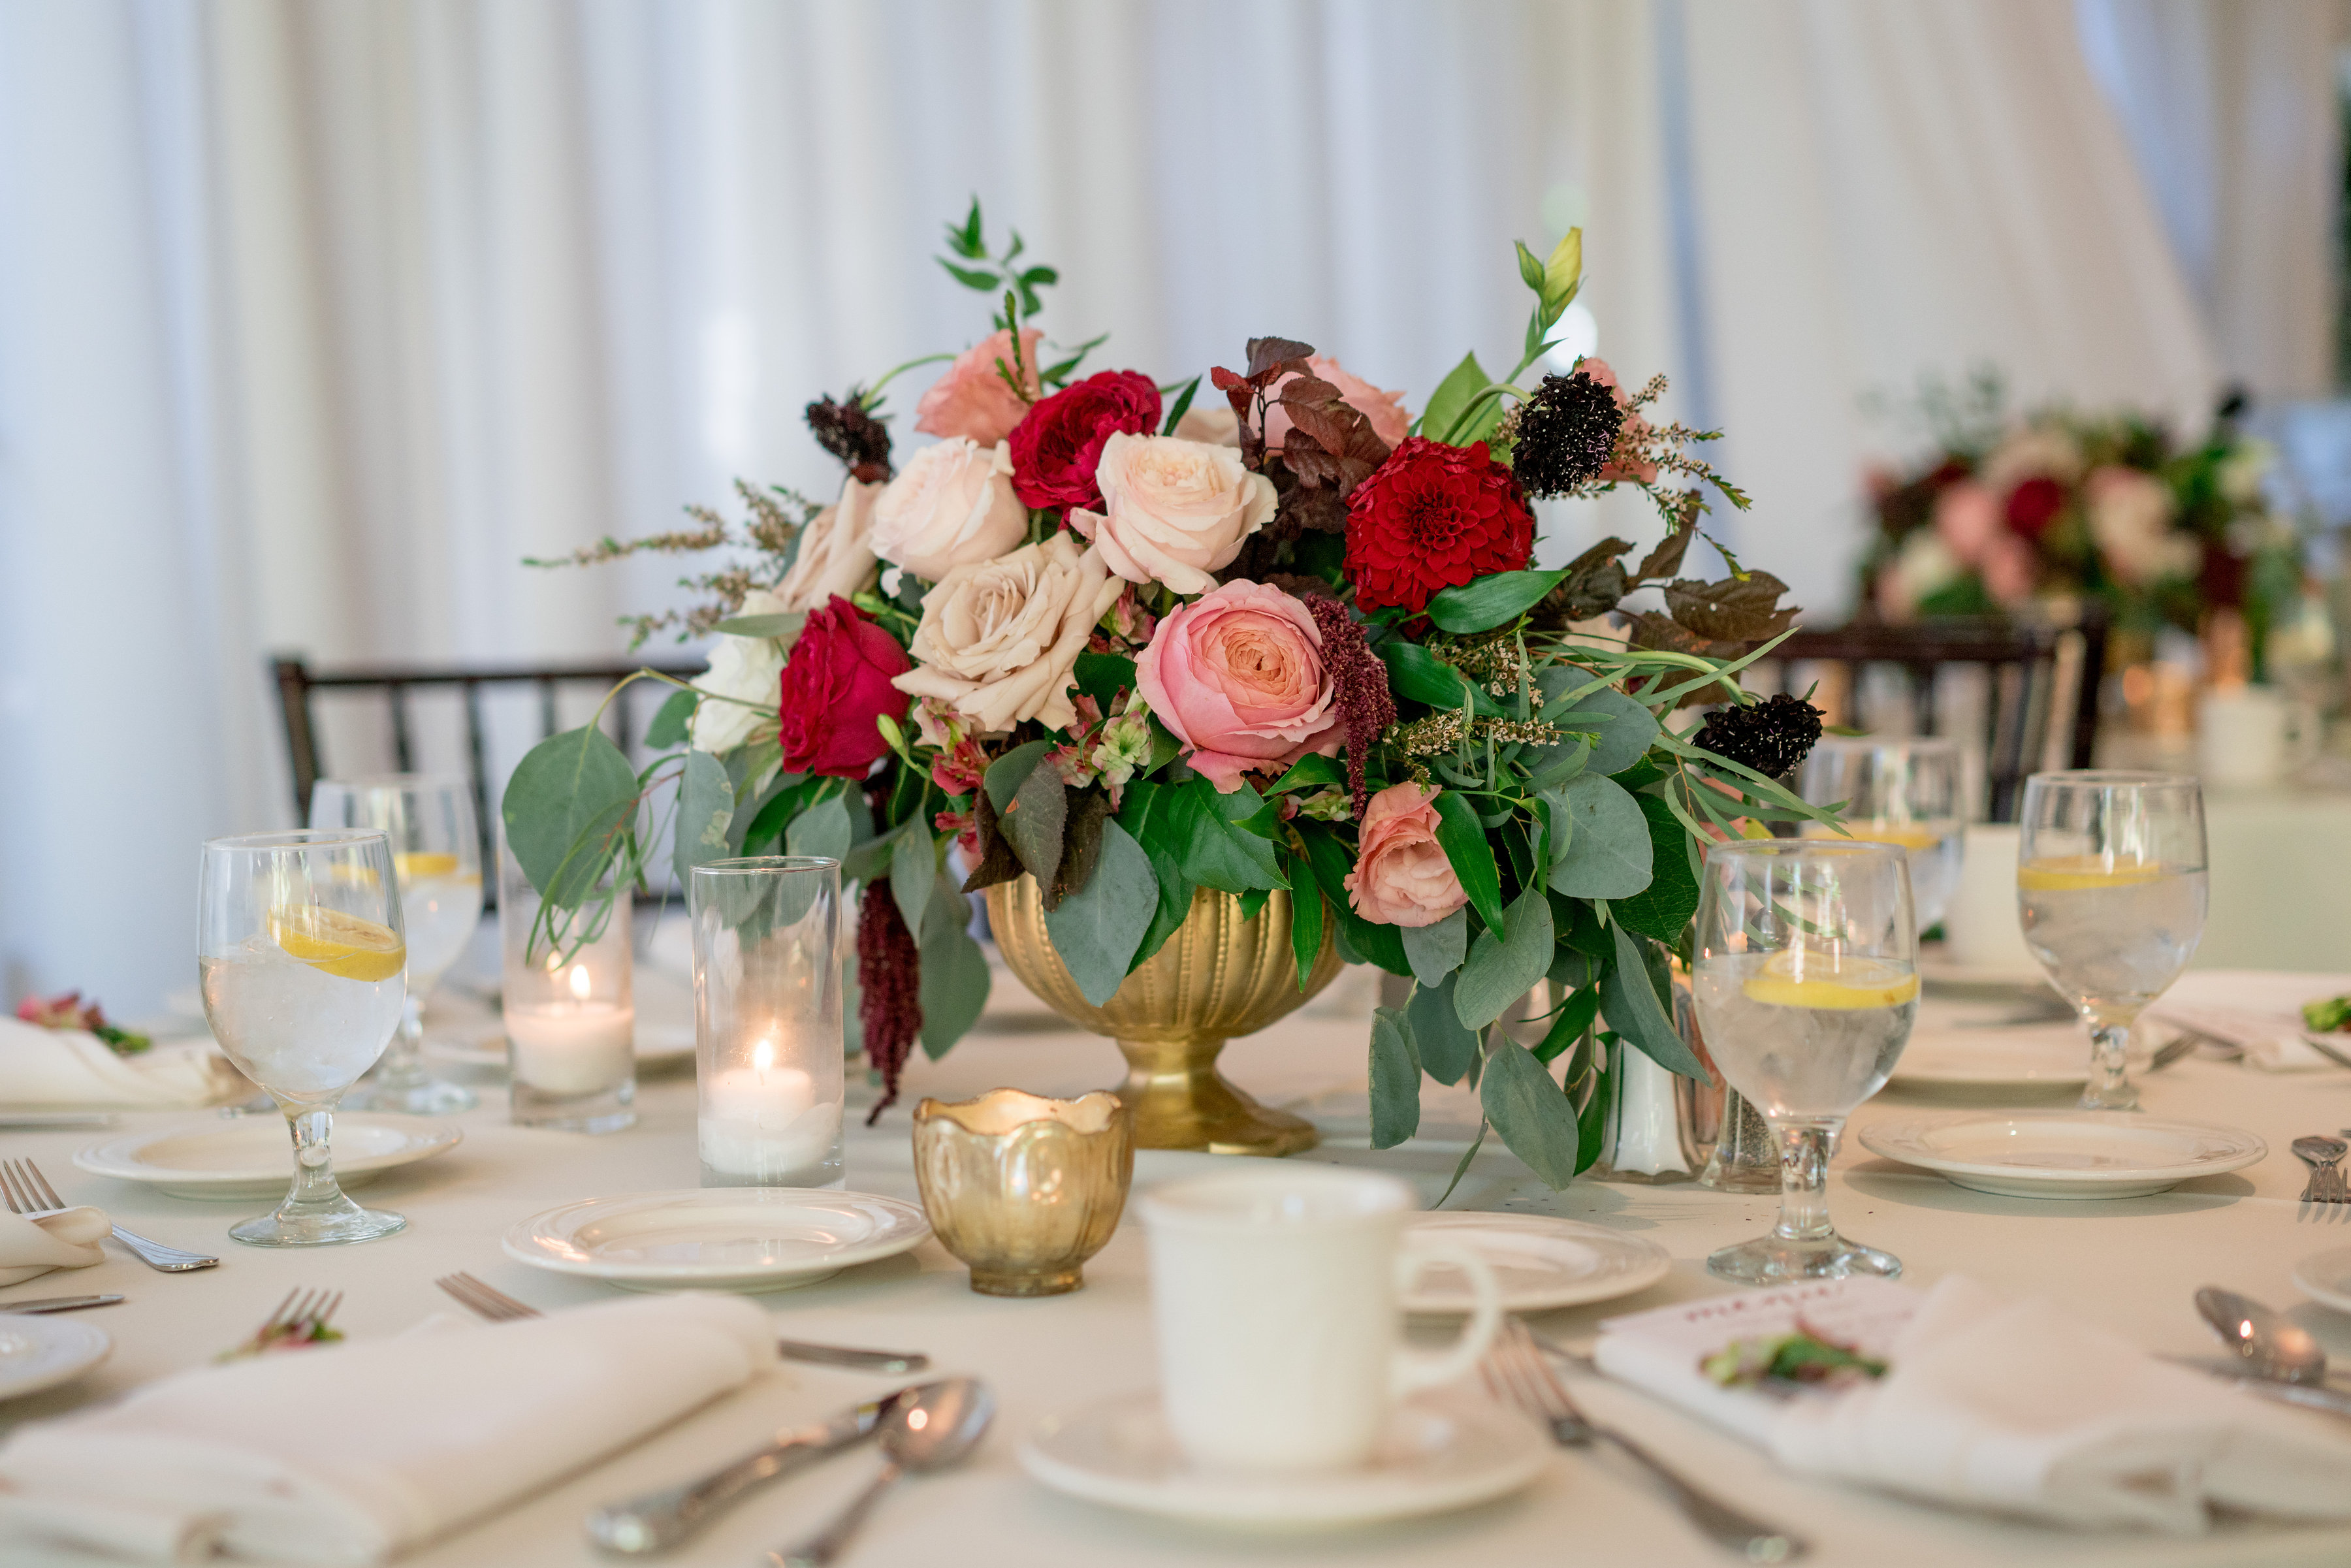 7 Simple And Small Floral Arrangements For Your Wedding Reception